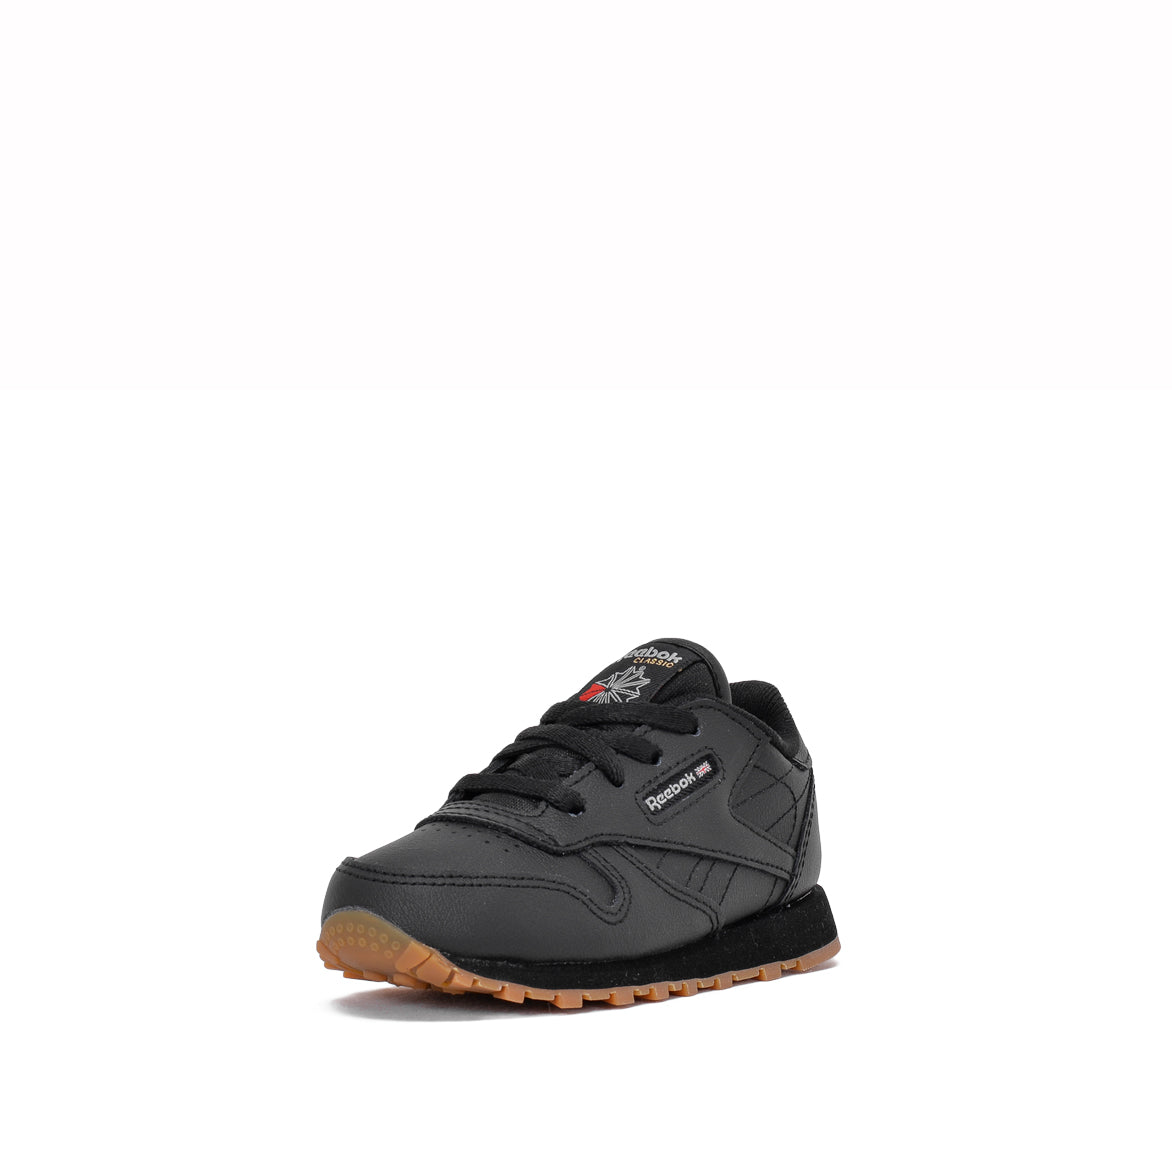 CLASSIC LEATHER (TODDLER) - BLACK / GUM